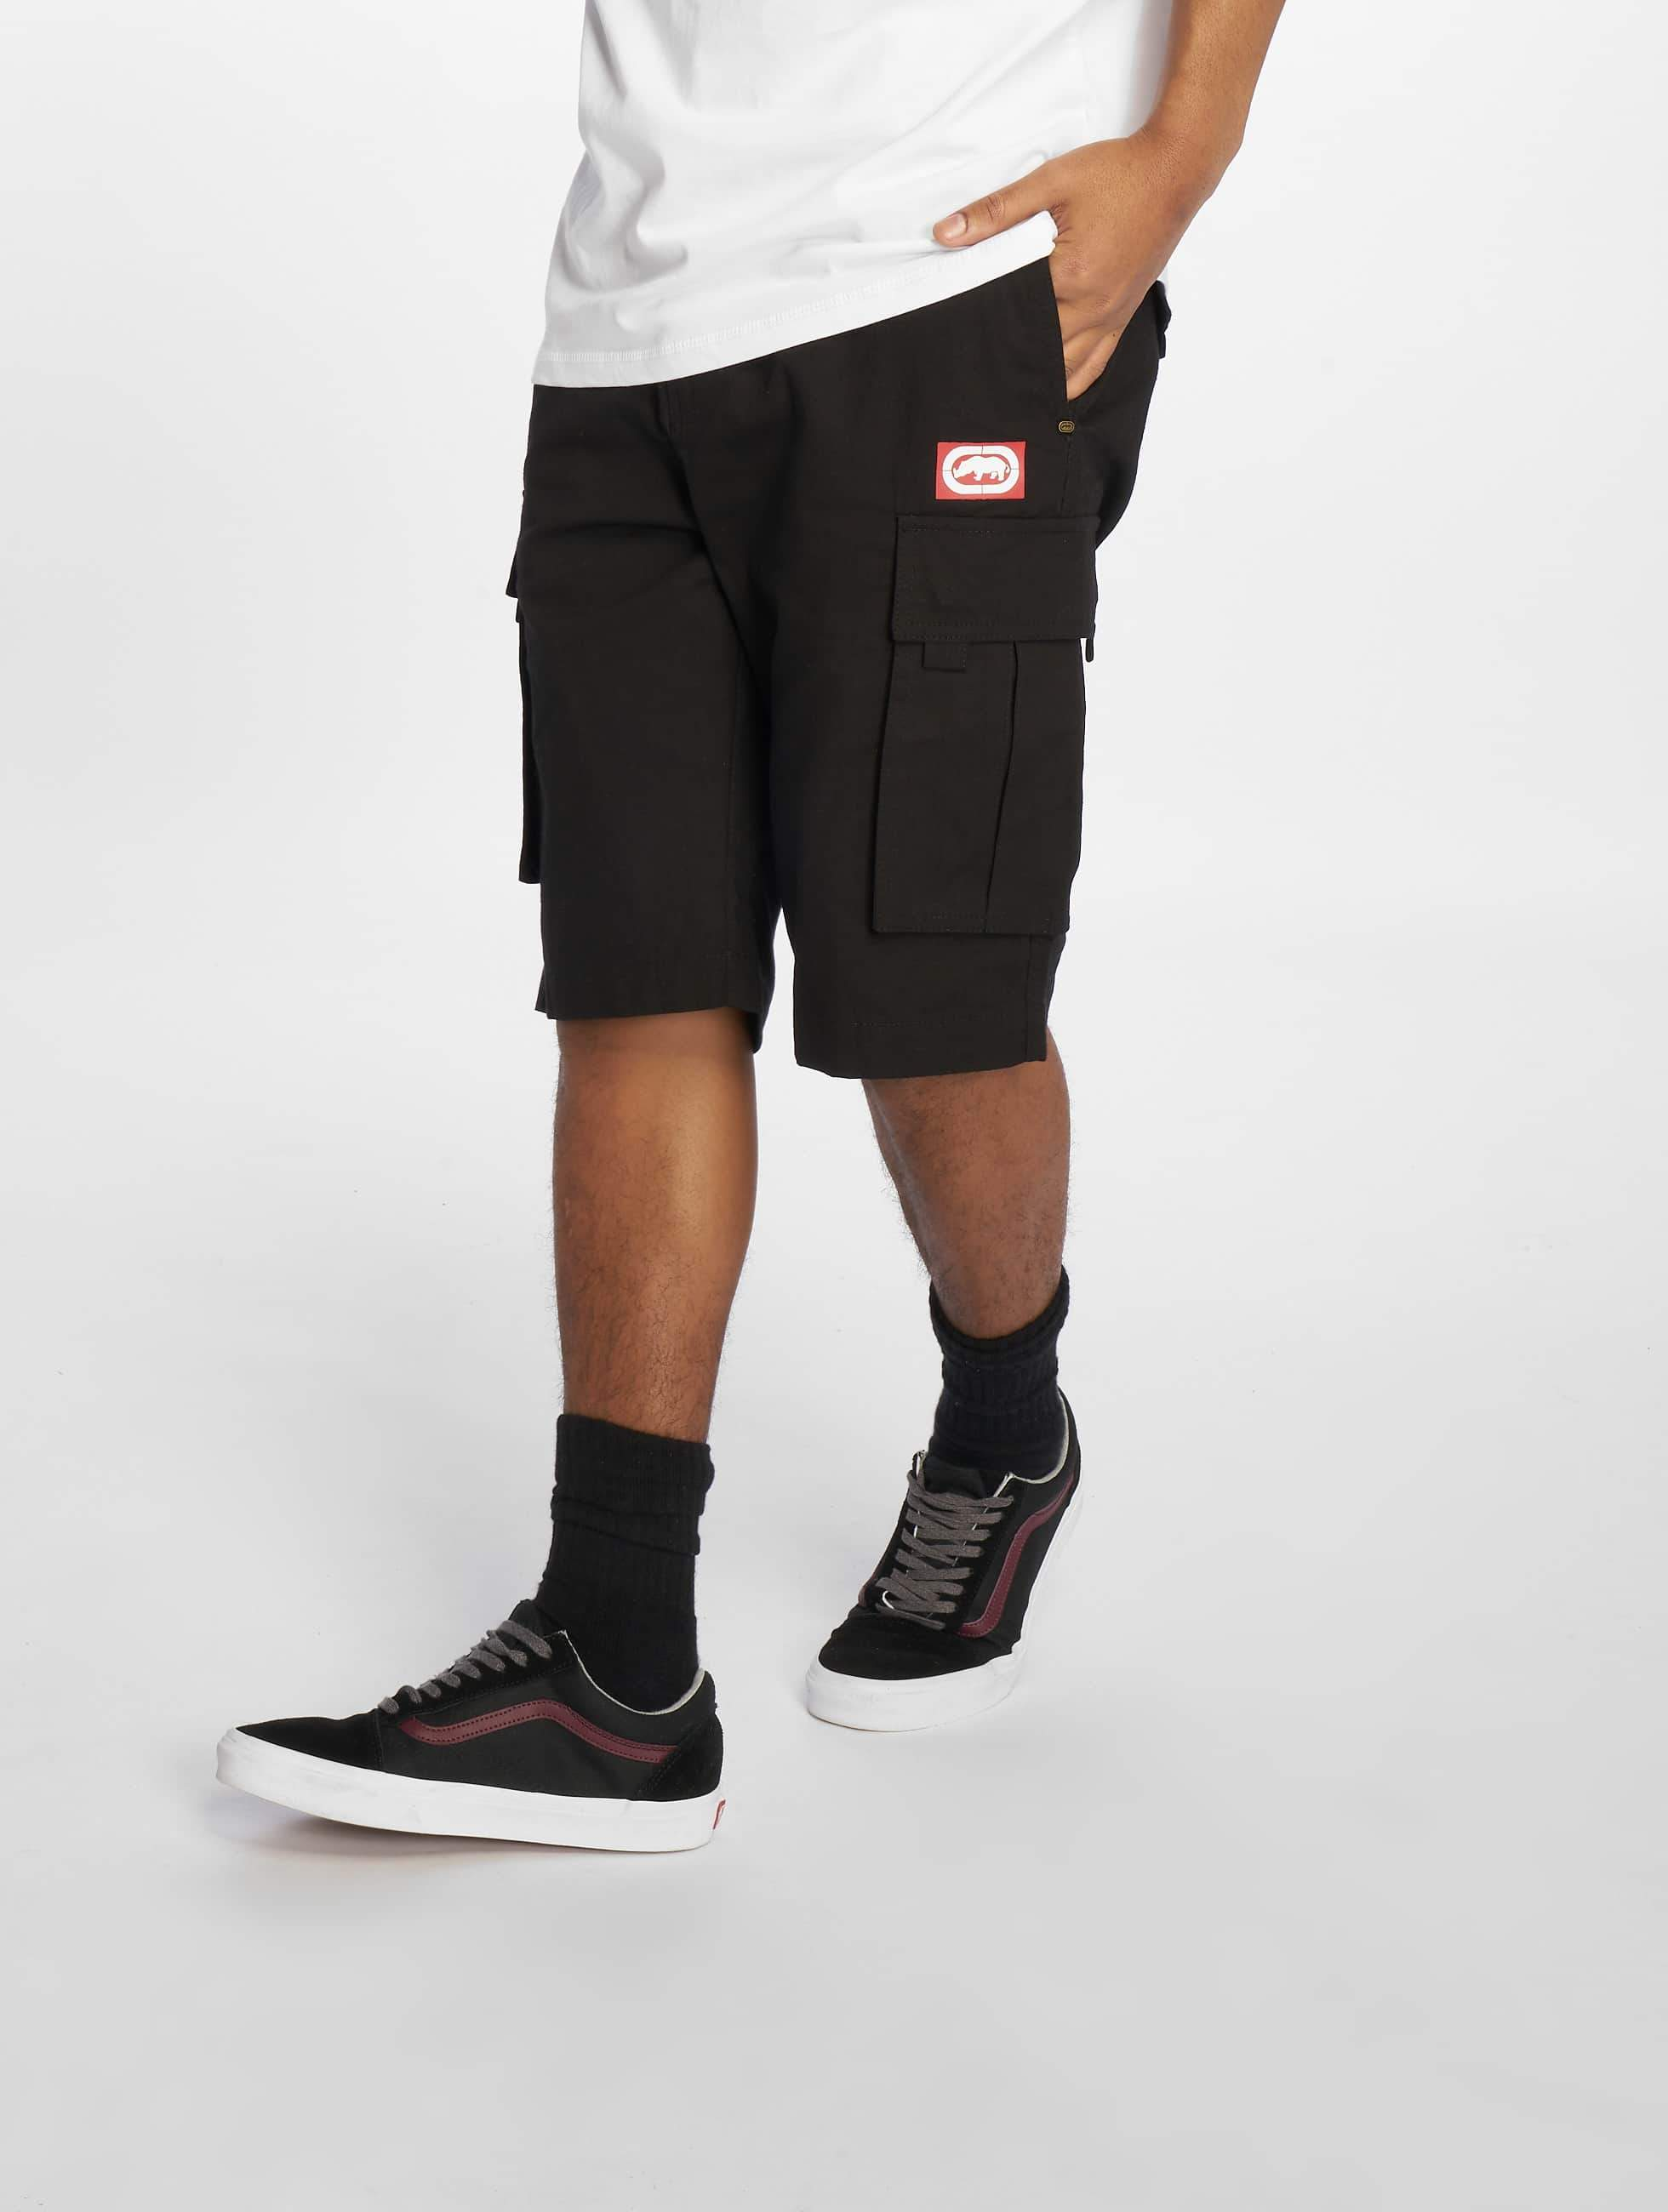 Ecko Unltd. / Short Rockaway in black 40